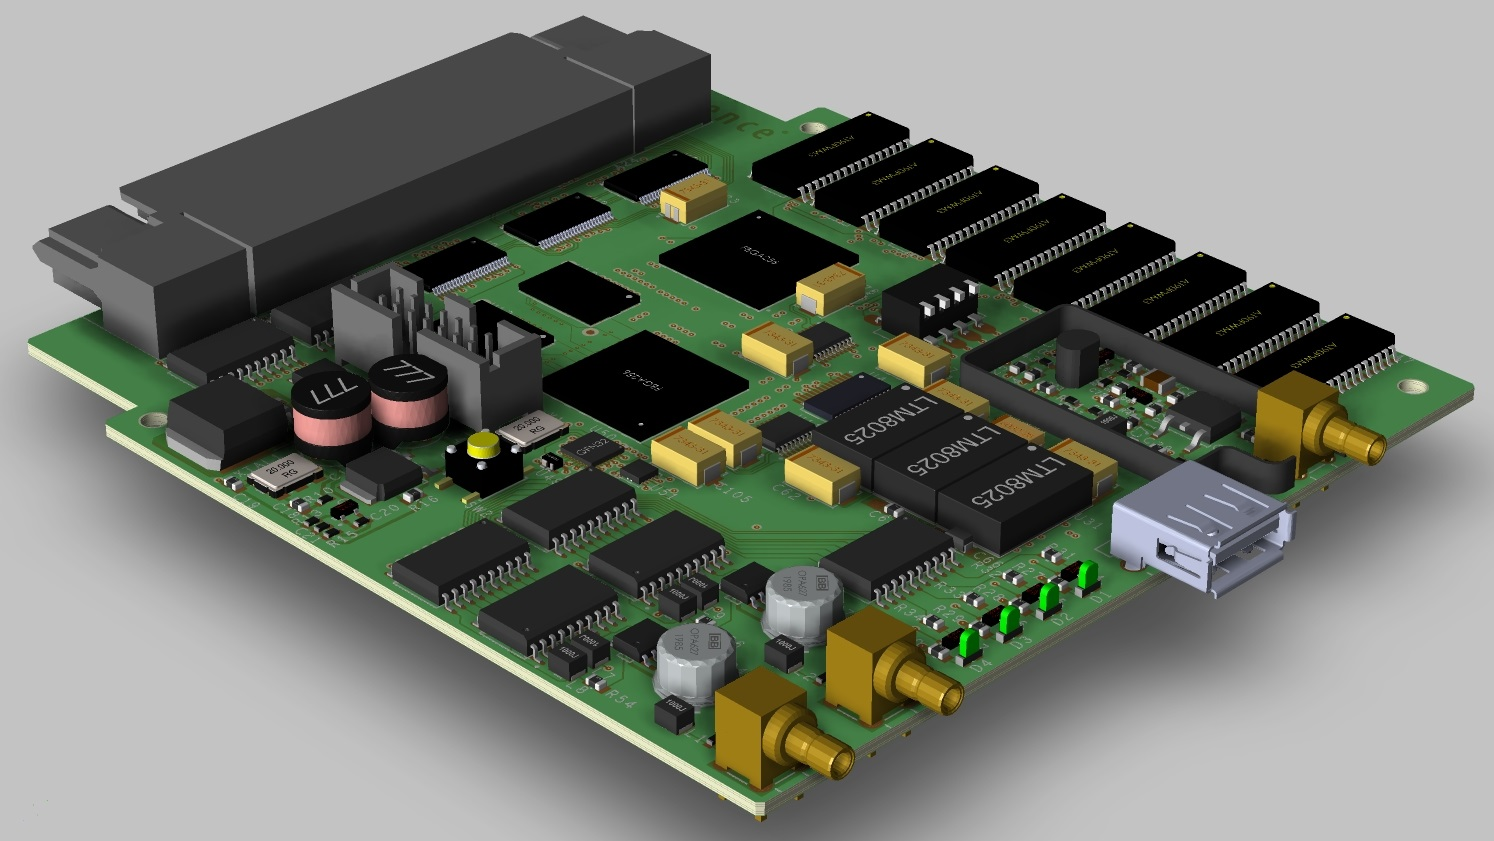 Screenshot of a 3D layout of a printed circuit board